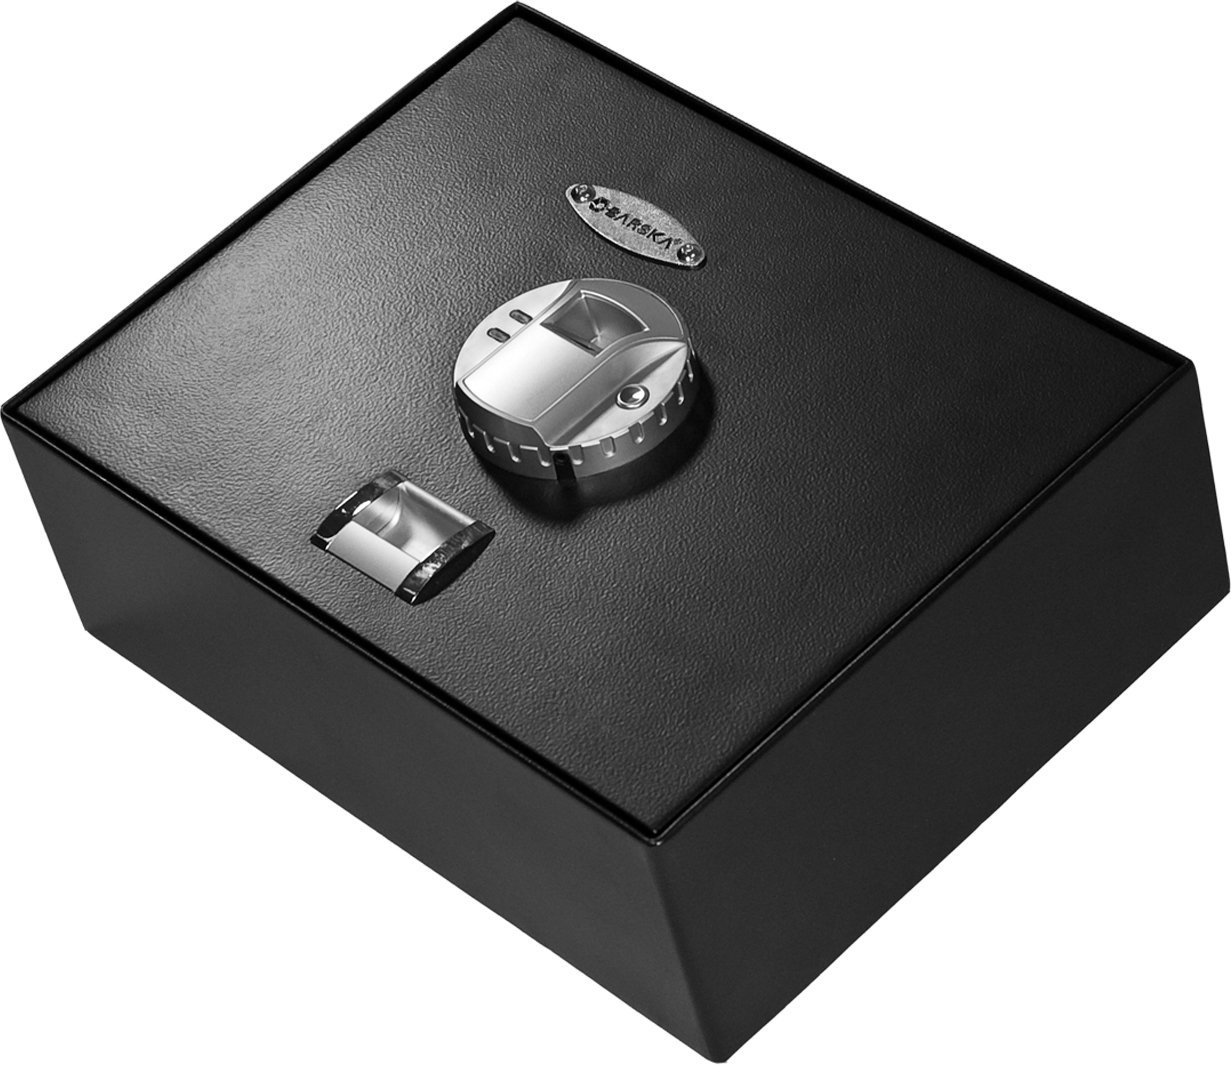 check out the BARSKA Top Opening Biometric Fingerprint Safe in this upclose picture